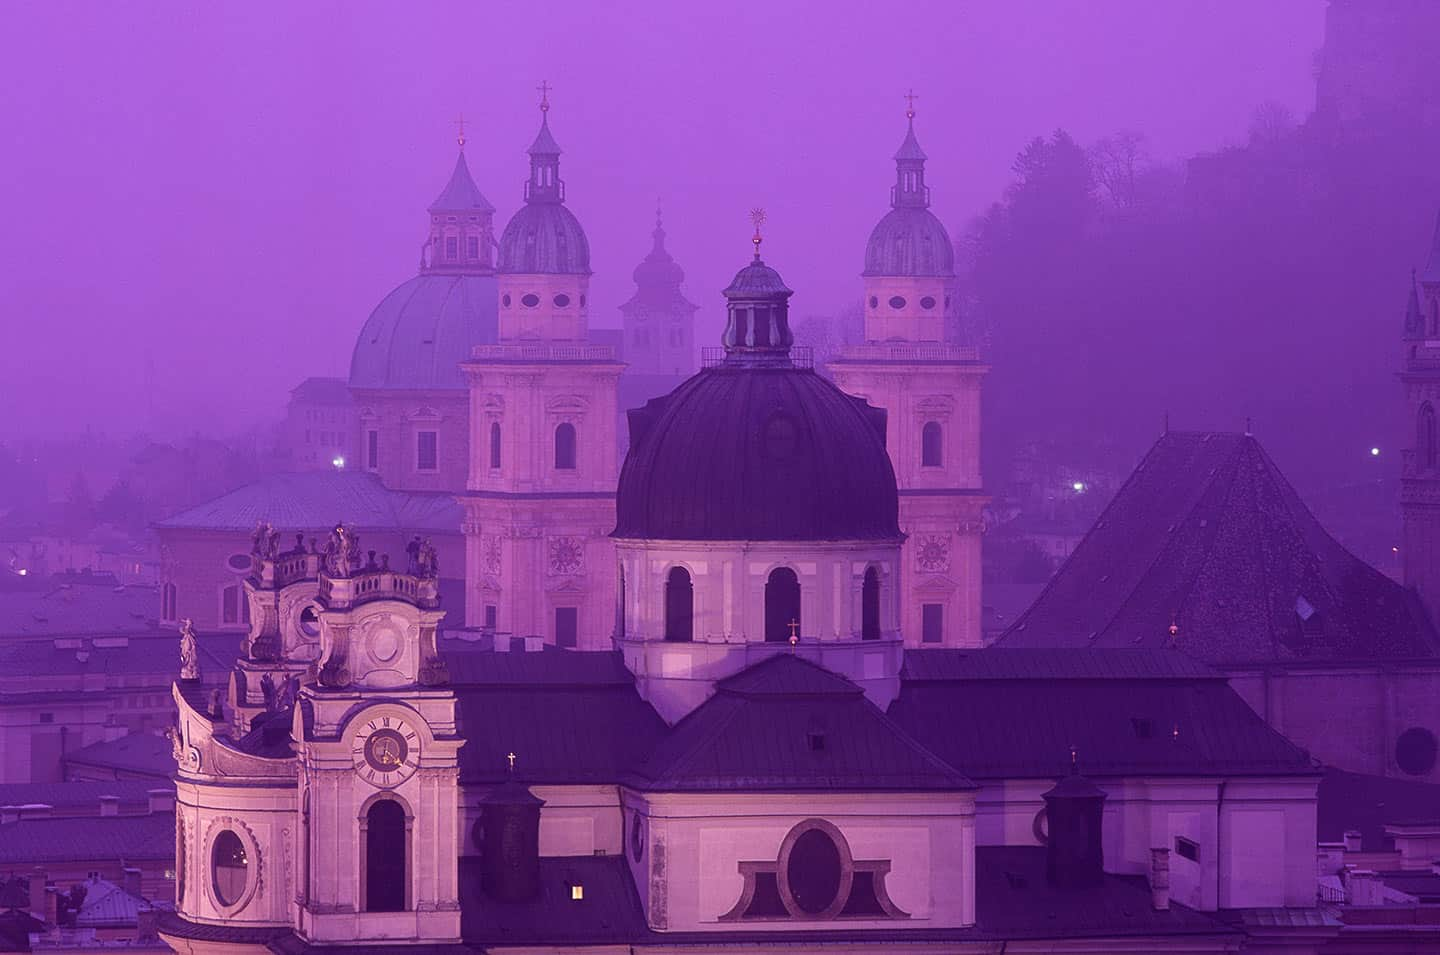 Image of the Baroque skyline of Salzburg